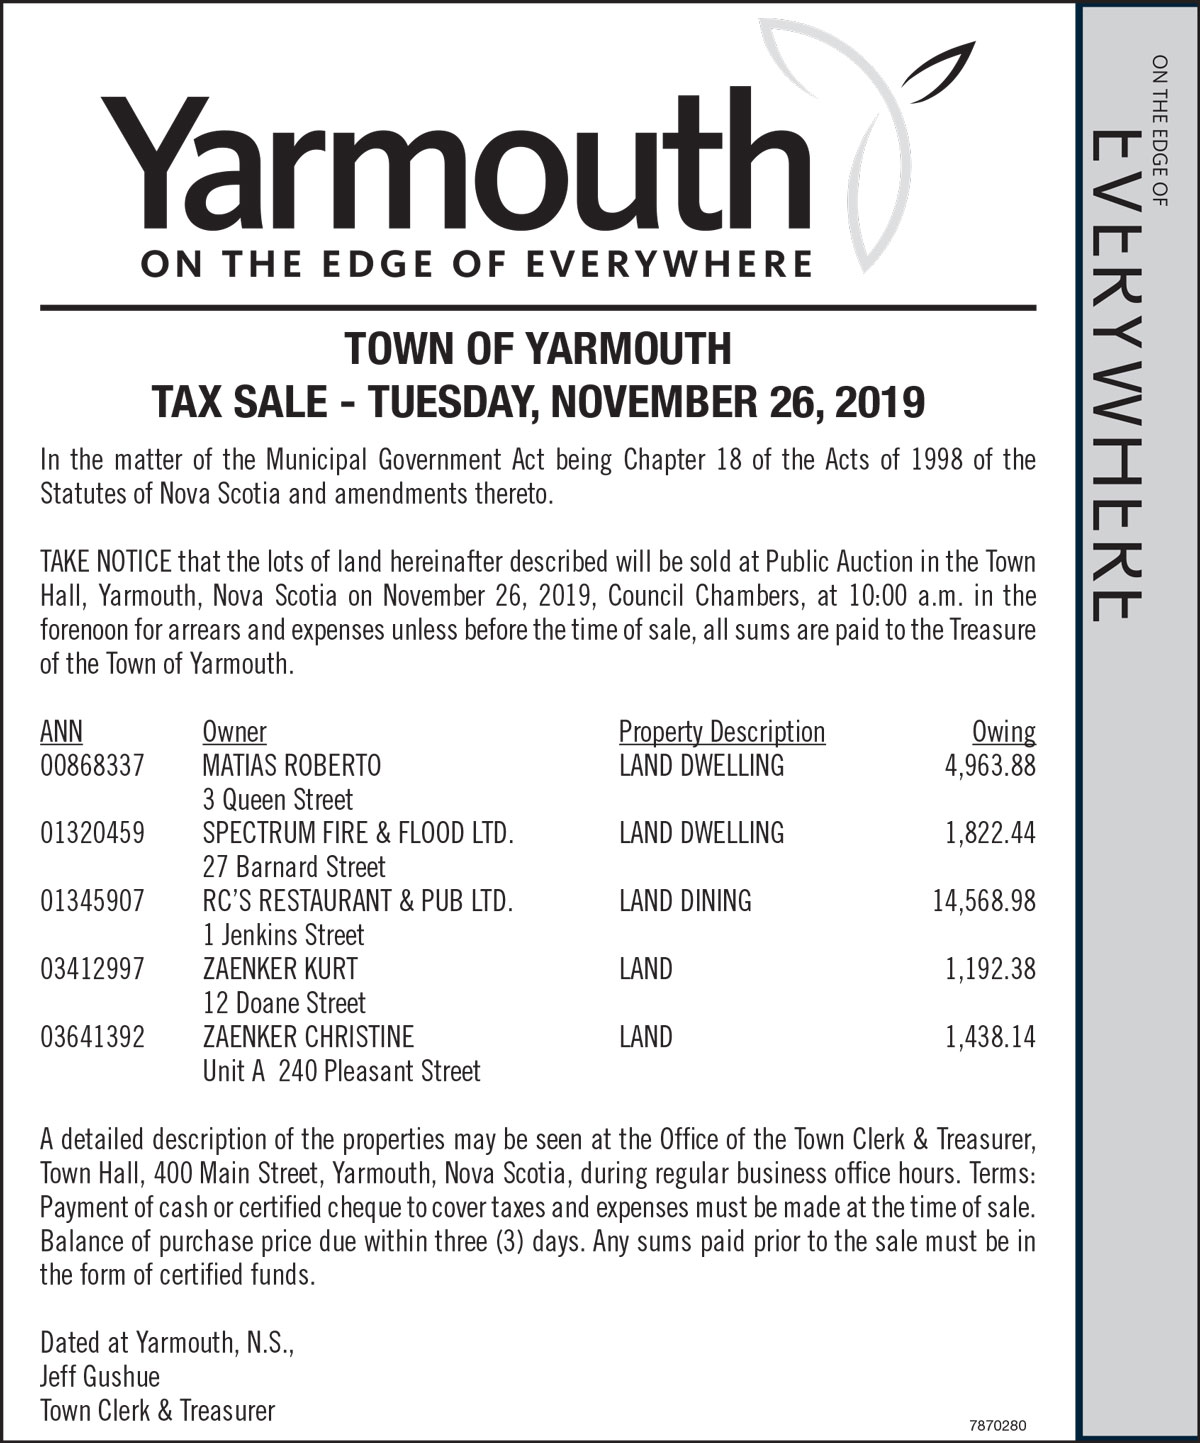 TOWN OF YARMOUTH TAX SALE NOV